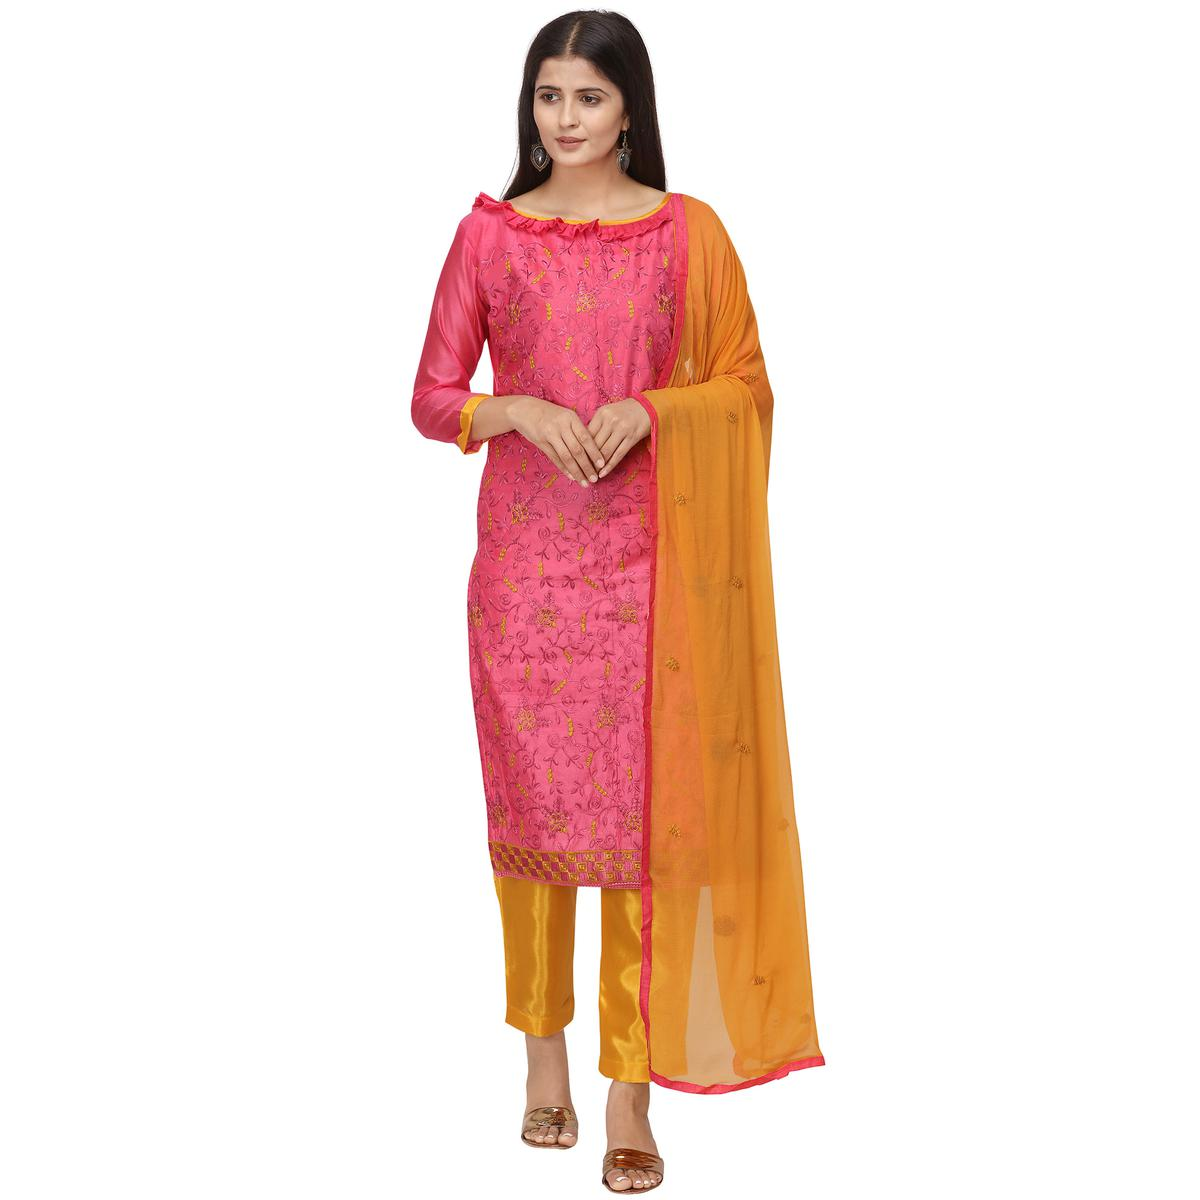 Mesmerising Pink Colored Casual Wear Embroidered Chanderi Cotton Dress Material